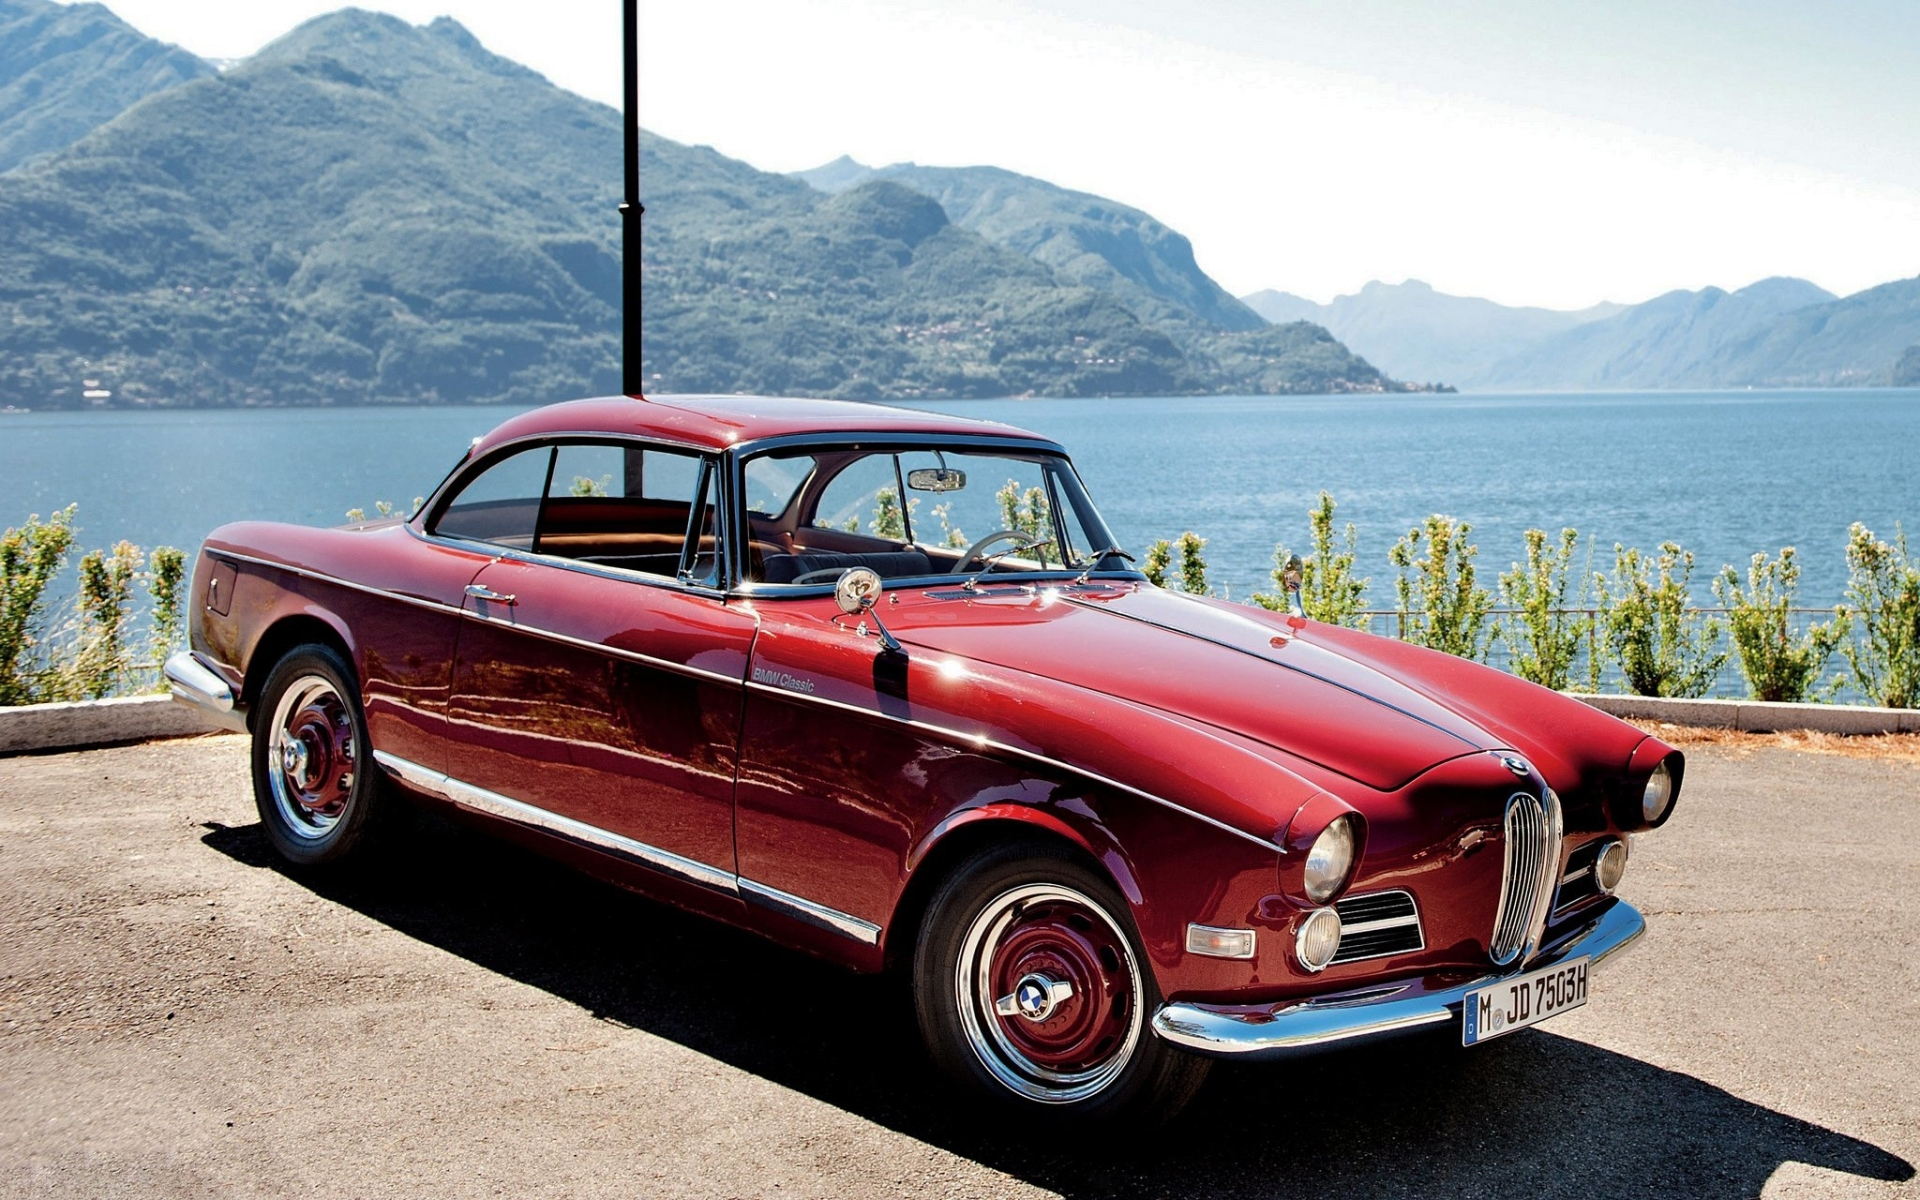 1956 Bmw 503 Coupe Retro Vehicles Cars Auto Old Classic Wheels Red Chrome Scenic Mountains Hills Lakes Water Bay Wallpaper 1920x1200 26084 Wallpaperup